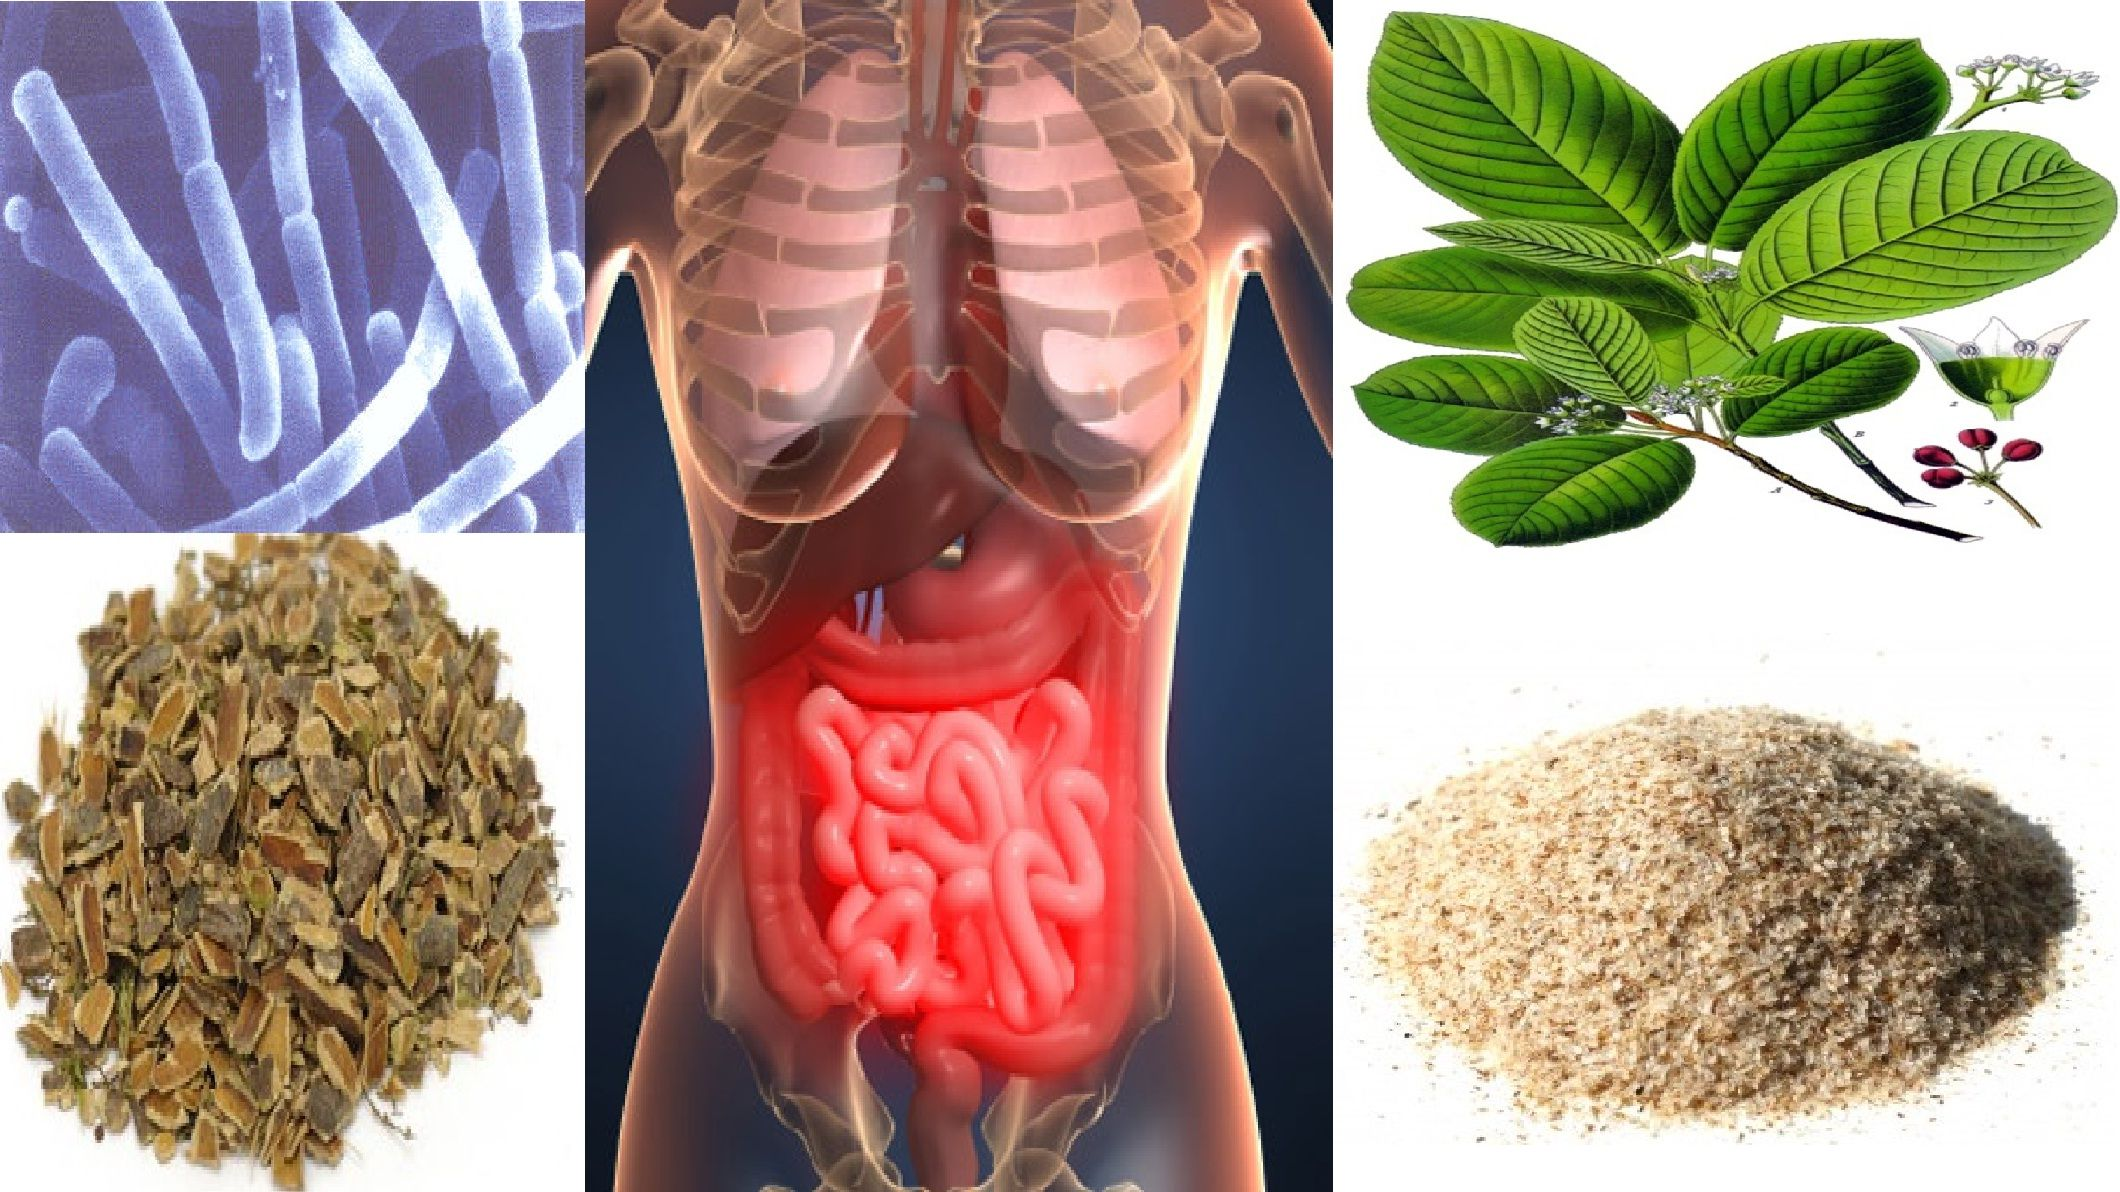 I Love Colon Cleansing #coloncleanse #coloncleanser #dietarysupplements #constipation #drozweighloss